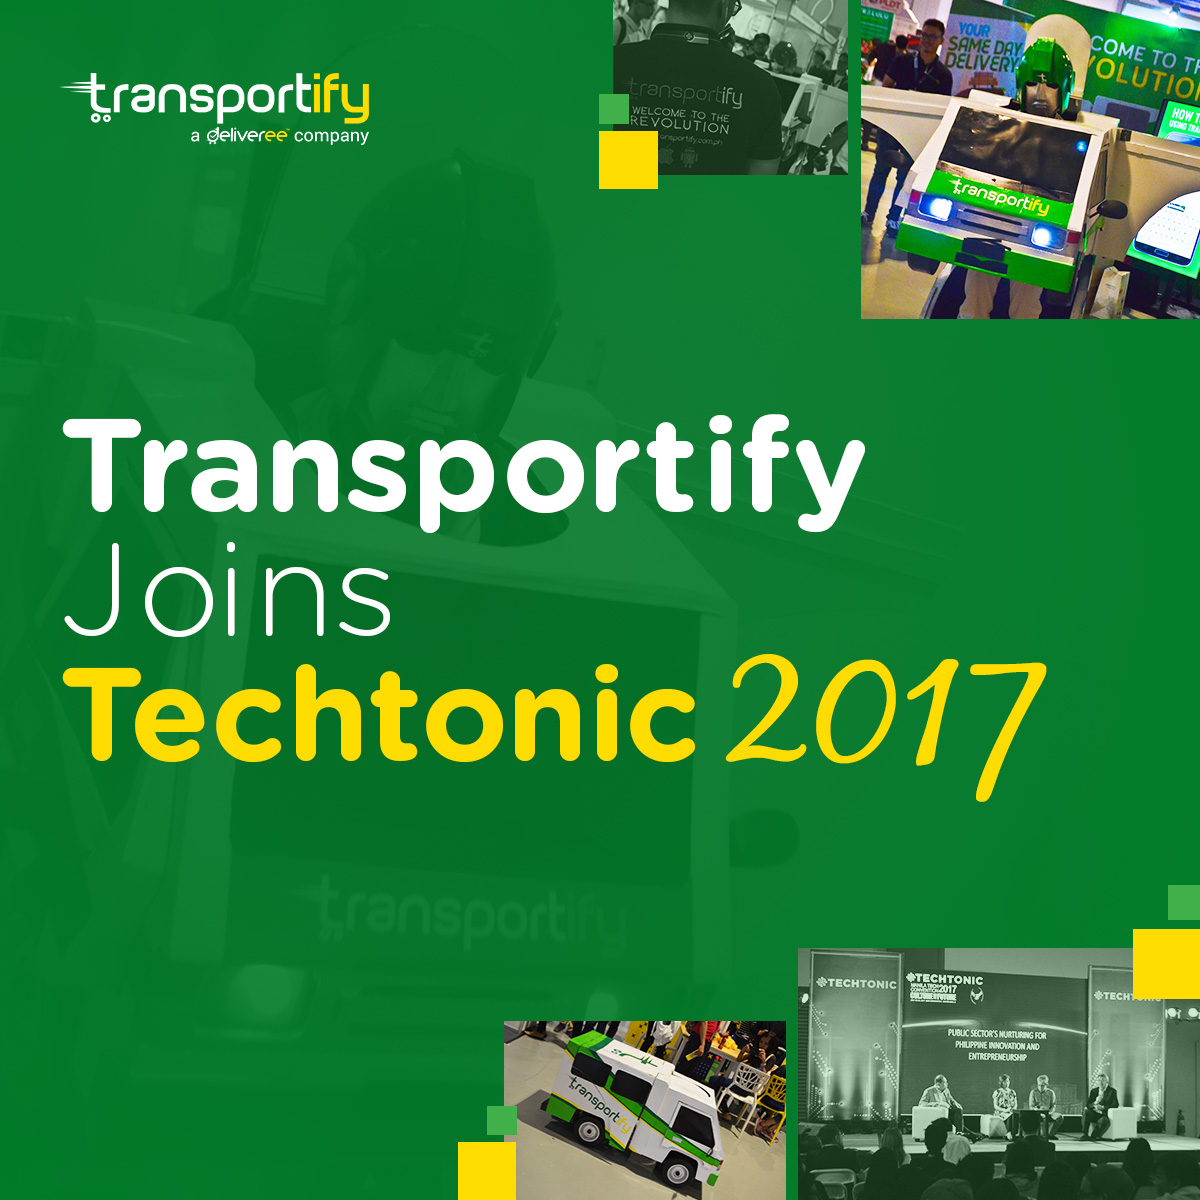 transportify courier, courier and delivery services, flower delivery, motorcycle pickup and delivery, transportify truck, Techtonic, Convention, Manila, Innovation, Startups, Transportify Robot